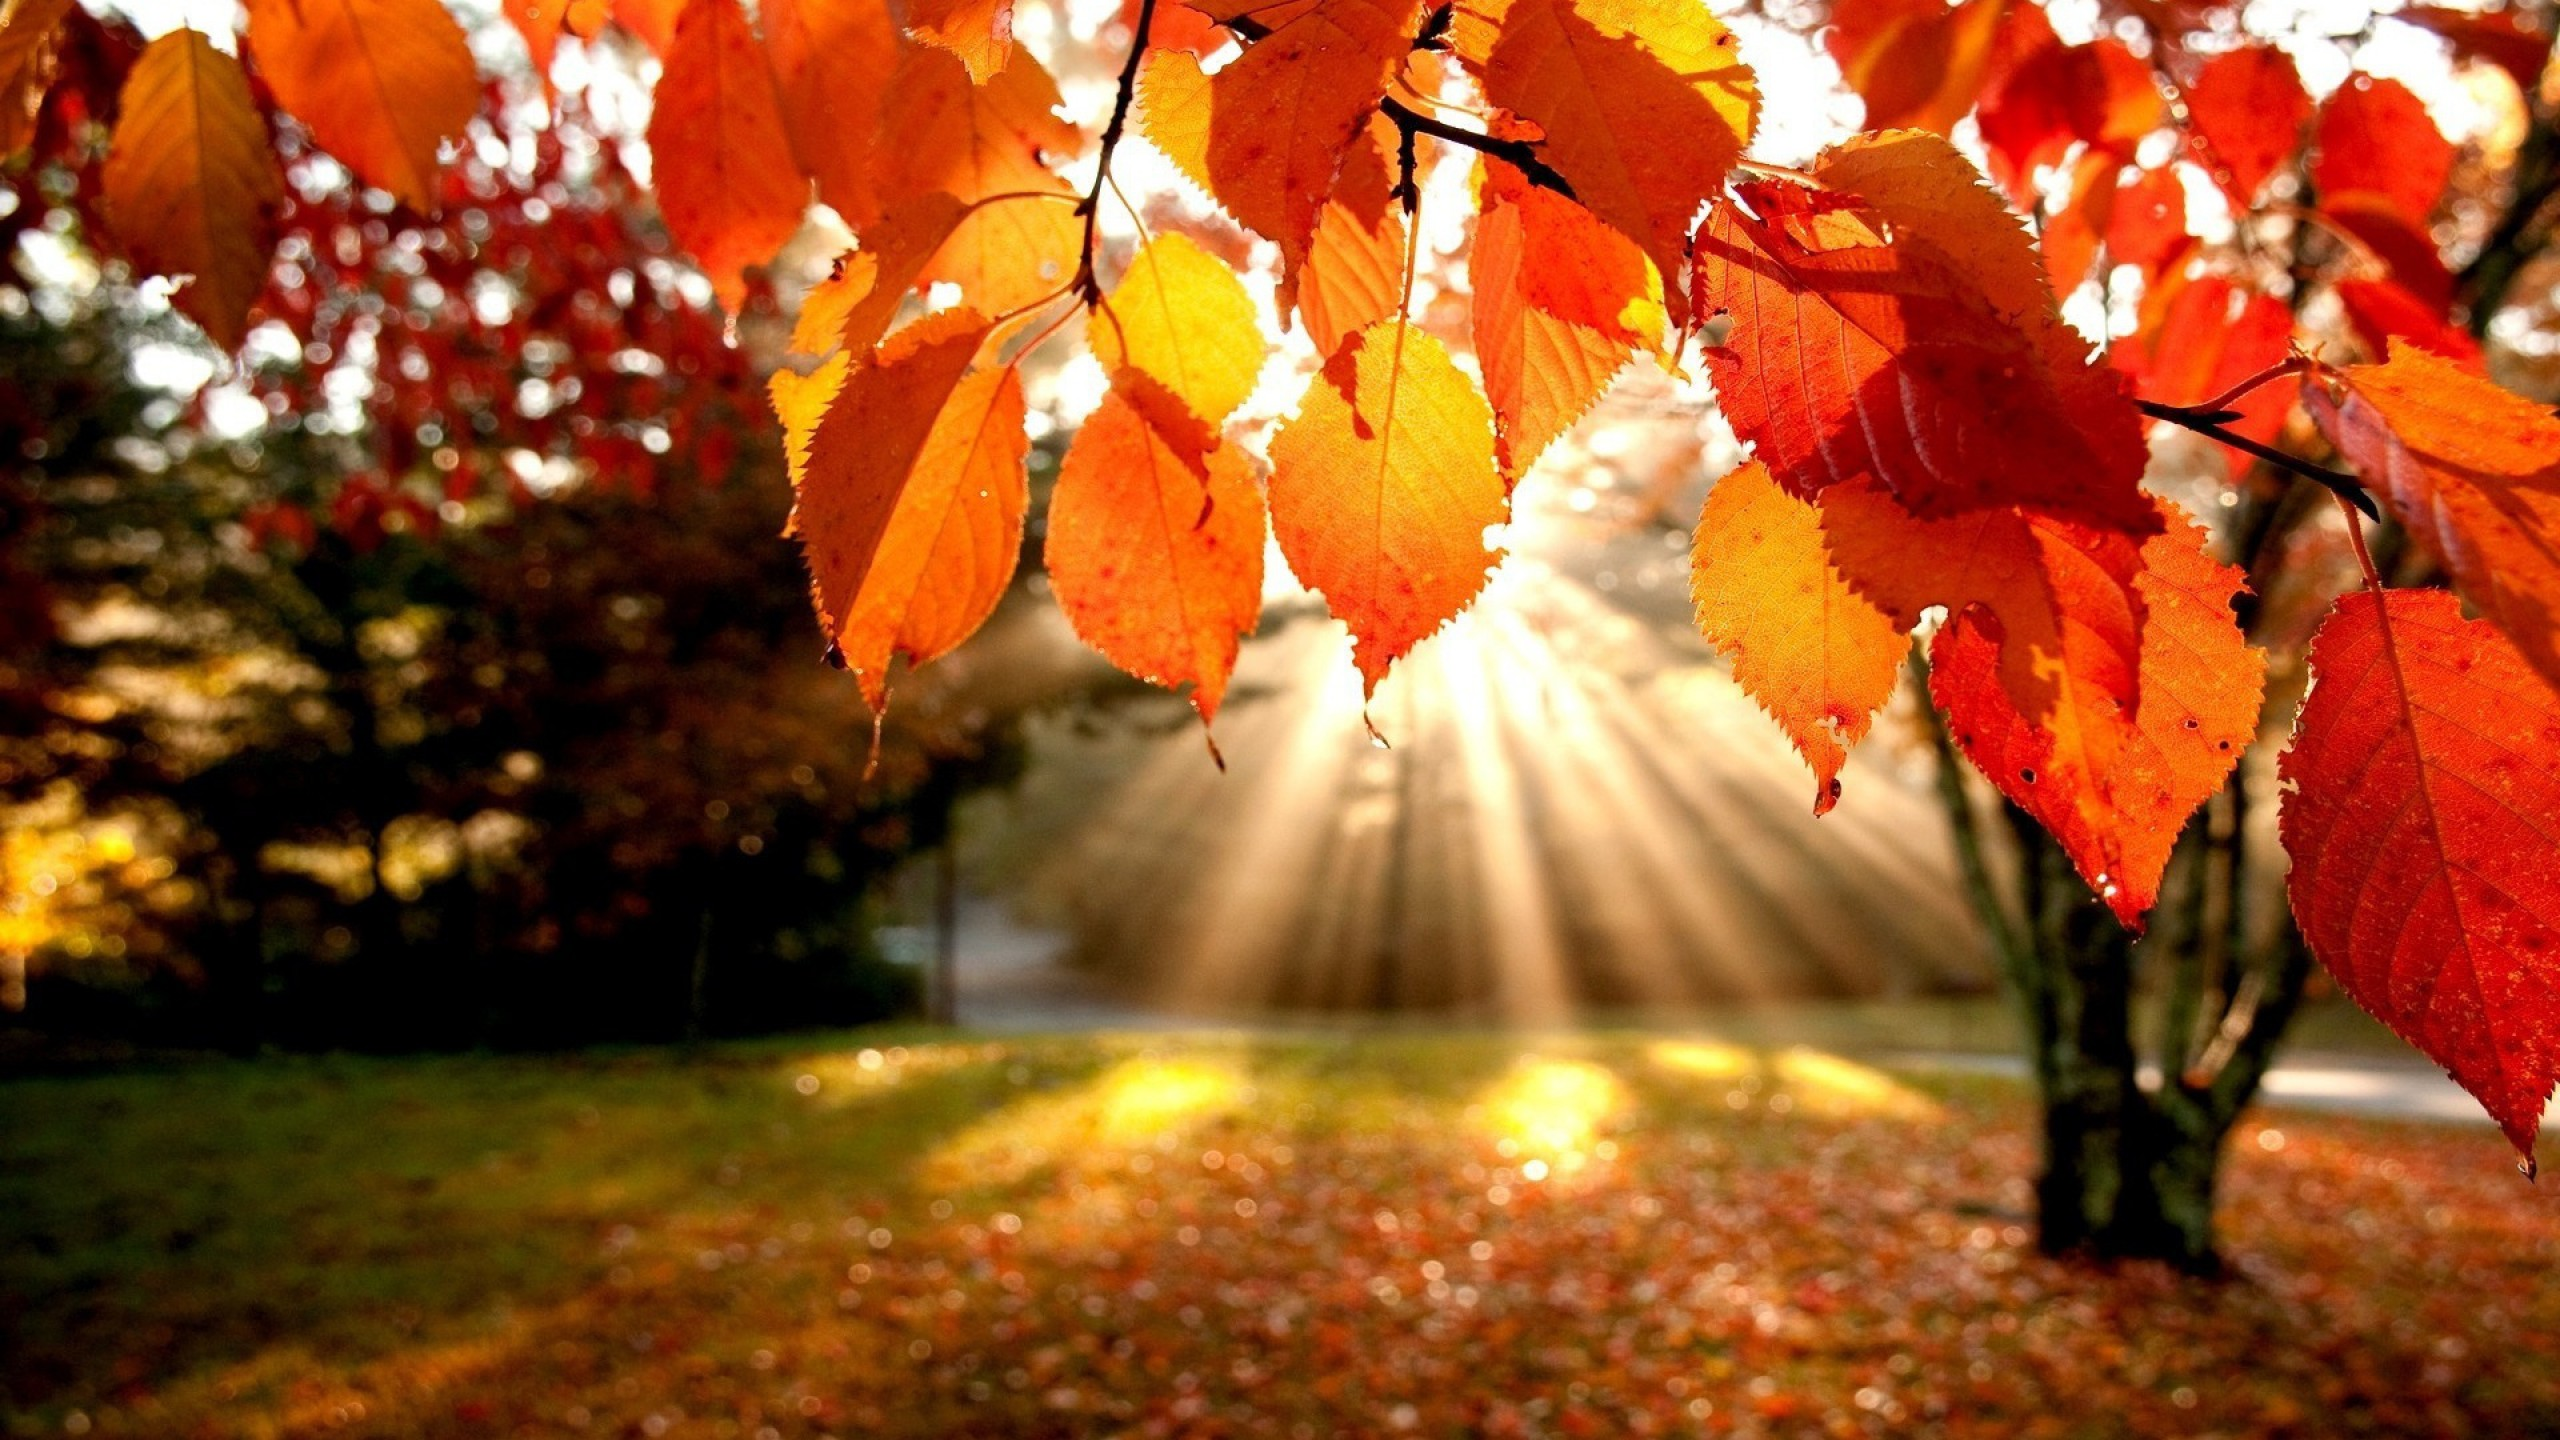 Fall Android Wallpaper Android Wallpaper Autumn Colors